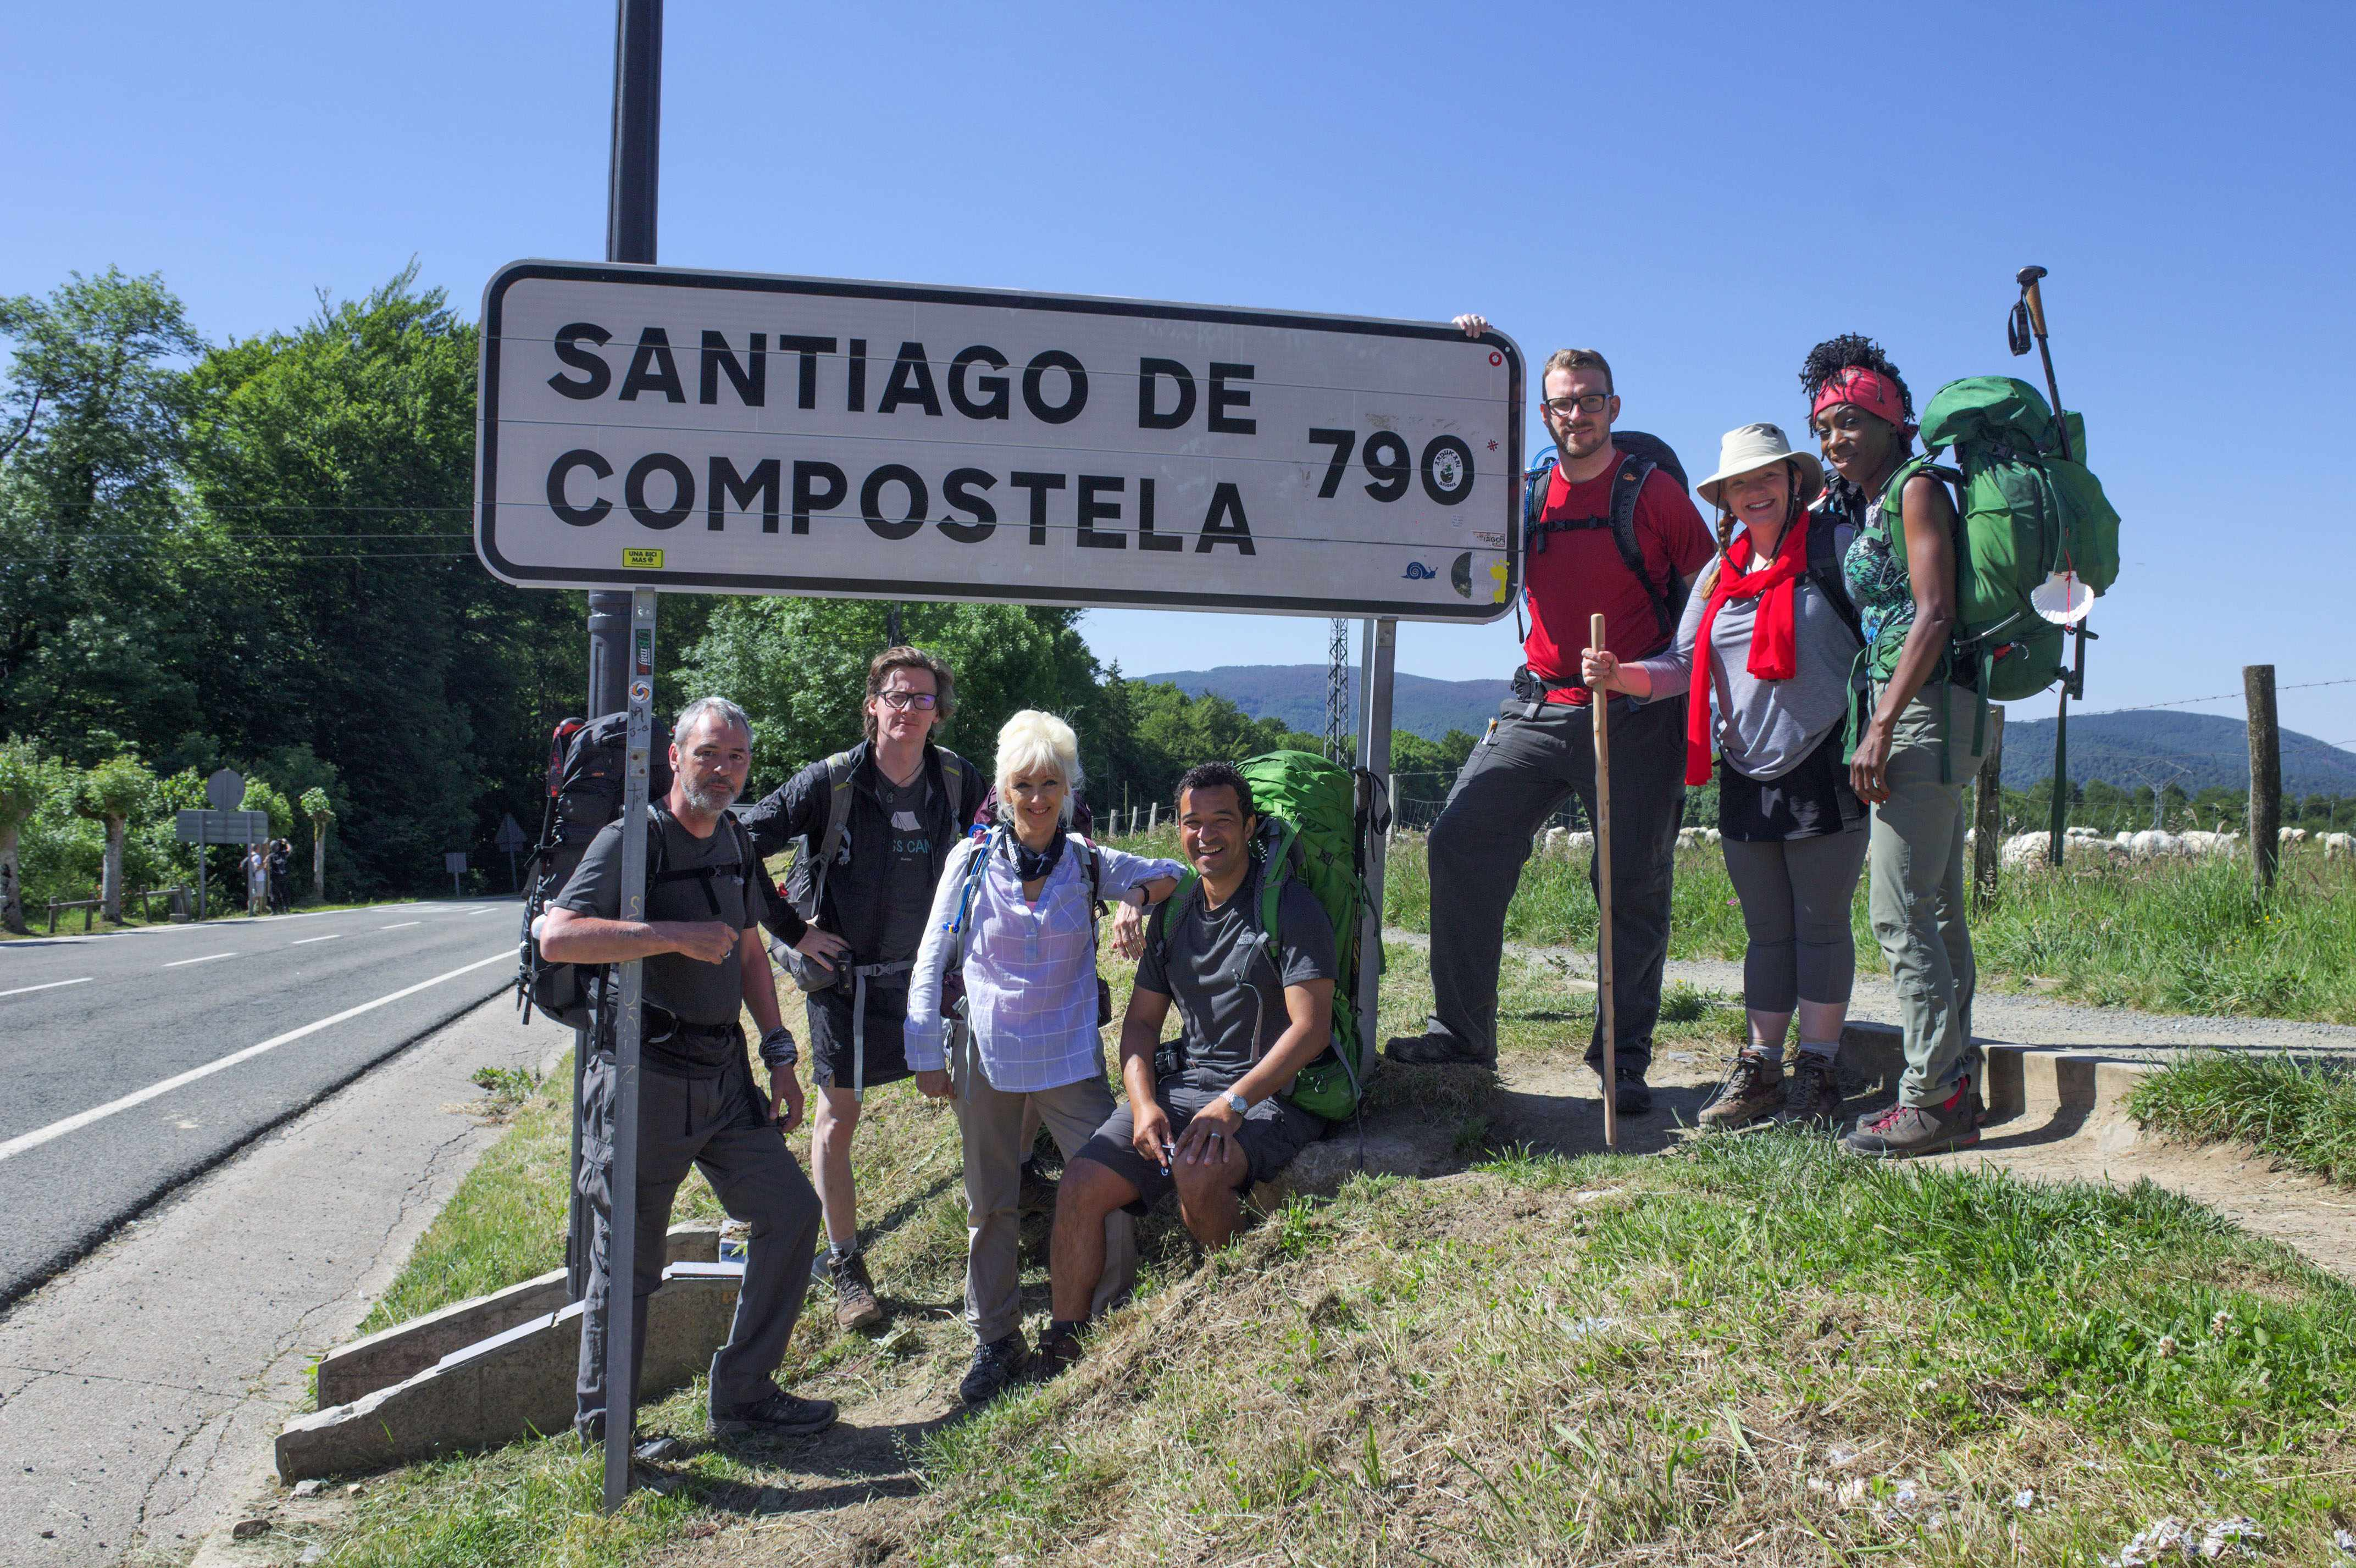 Programme Name: Pilgrimage: The Road to Santiago - TX: n/a - Episode: n/a (No. 1) - Picture Shows: at the start of their journey. Neil Morrissey, Ed Byrne, Debbie McGee, Raphael Rowe, JJ Chalmers, Rev. Kate Bottley, Heather Small - (C) CTVC - Photographer: Brigid McFall